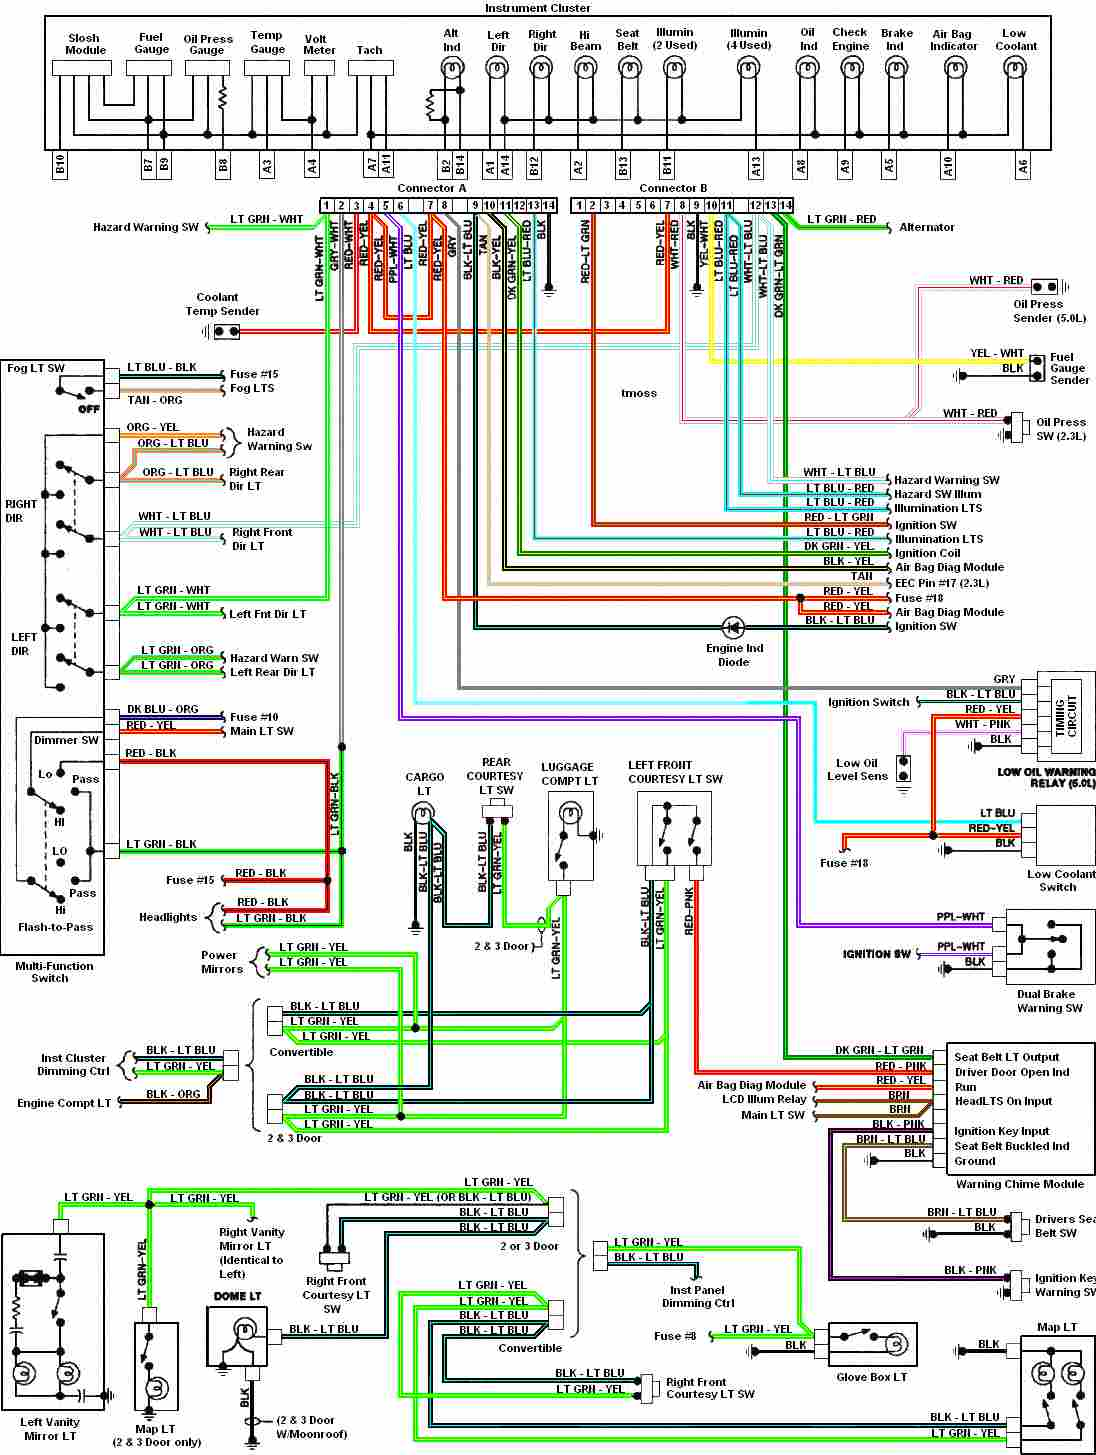 Popular Listings834 on 99 eclipse radio wiring diagram